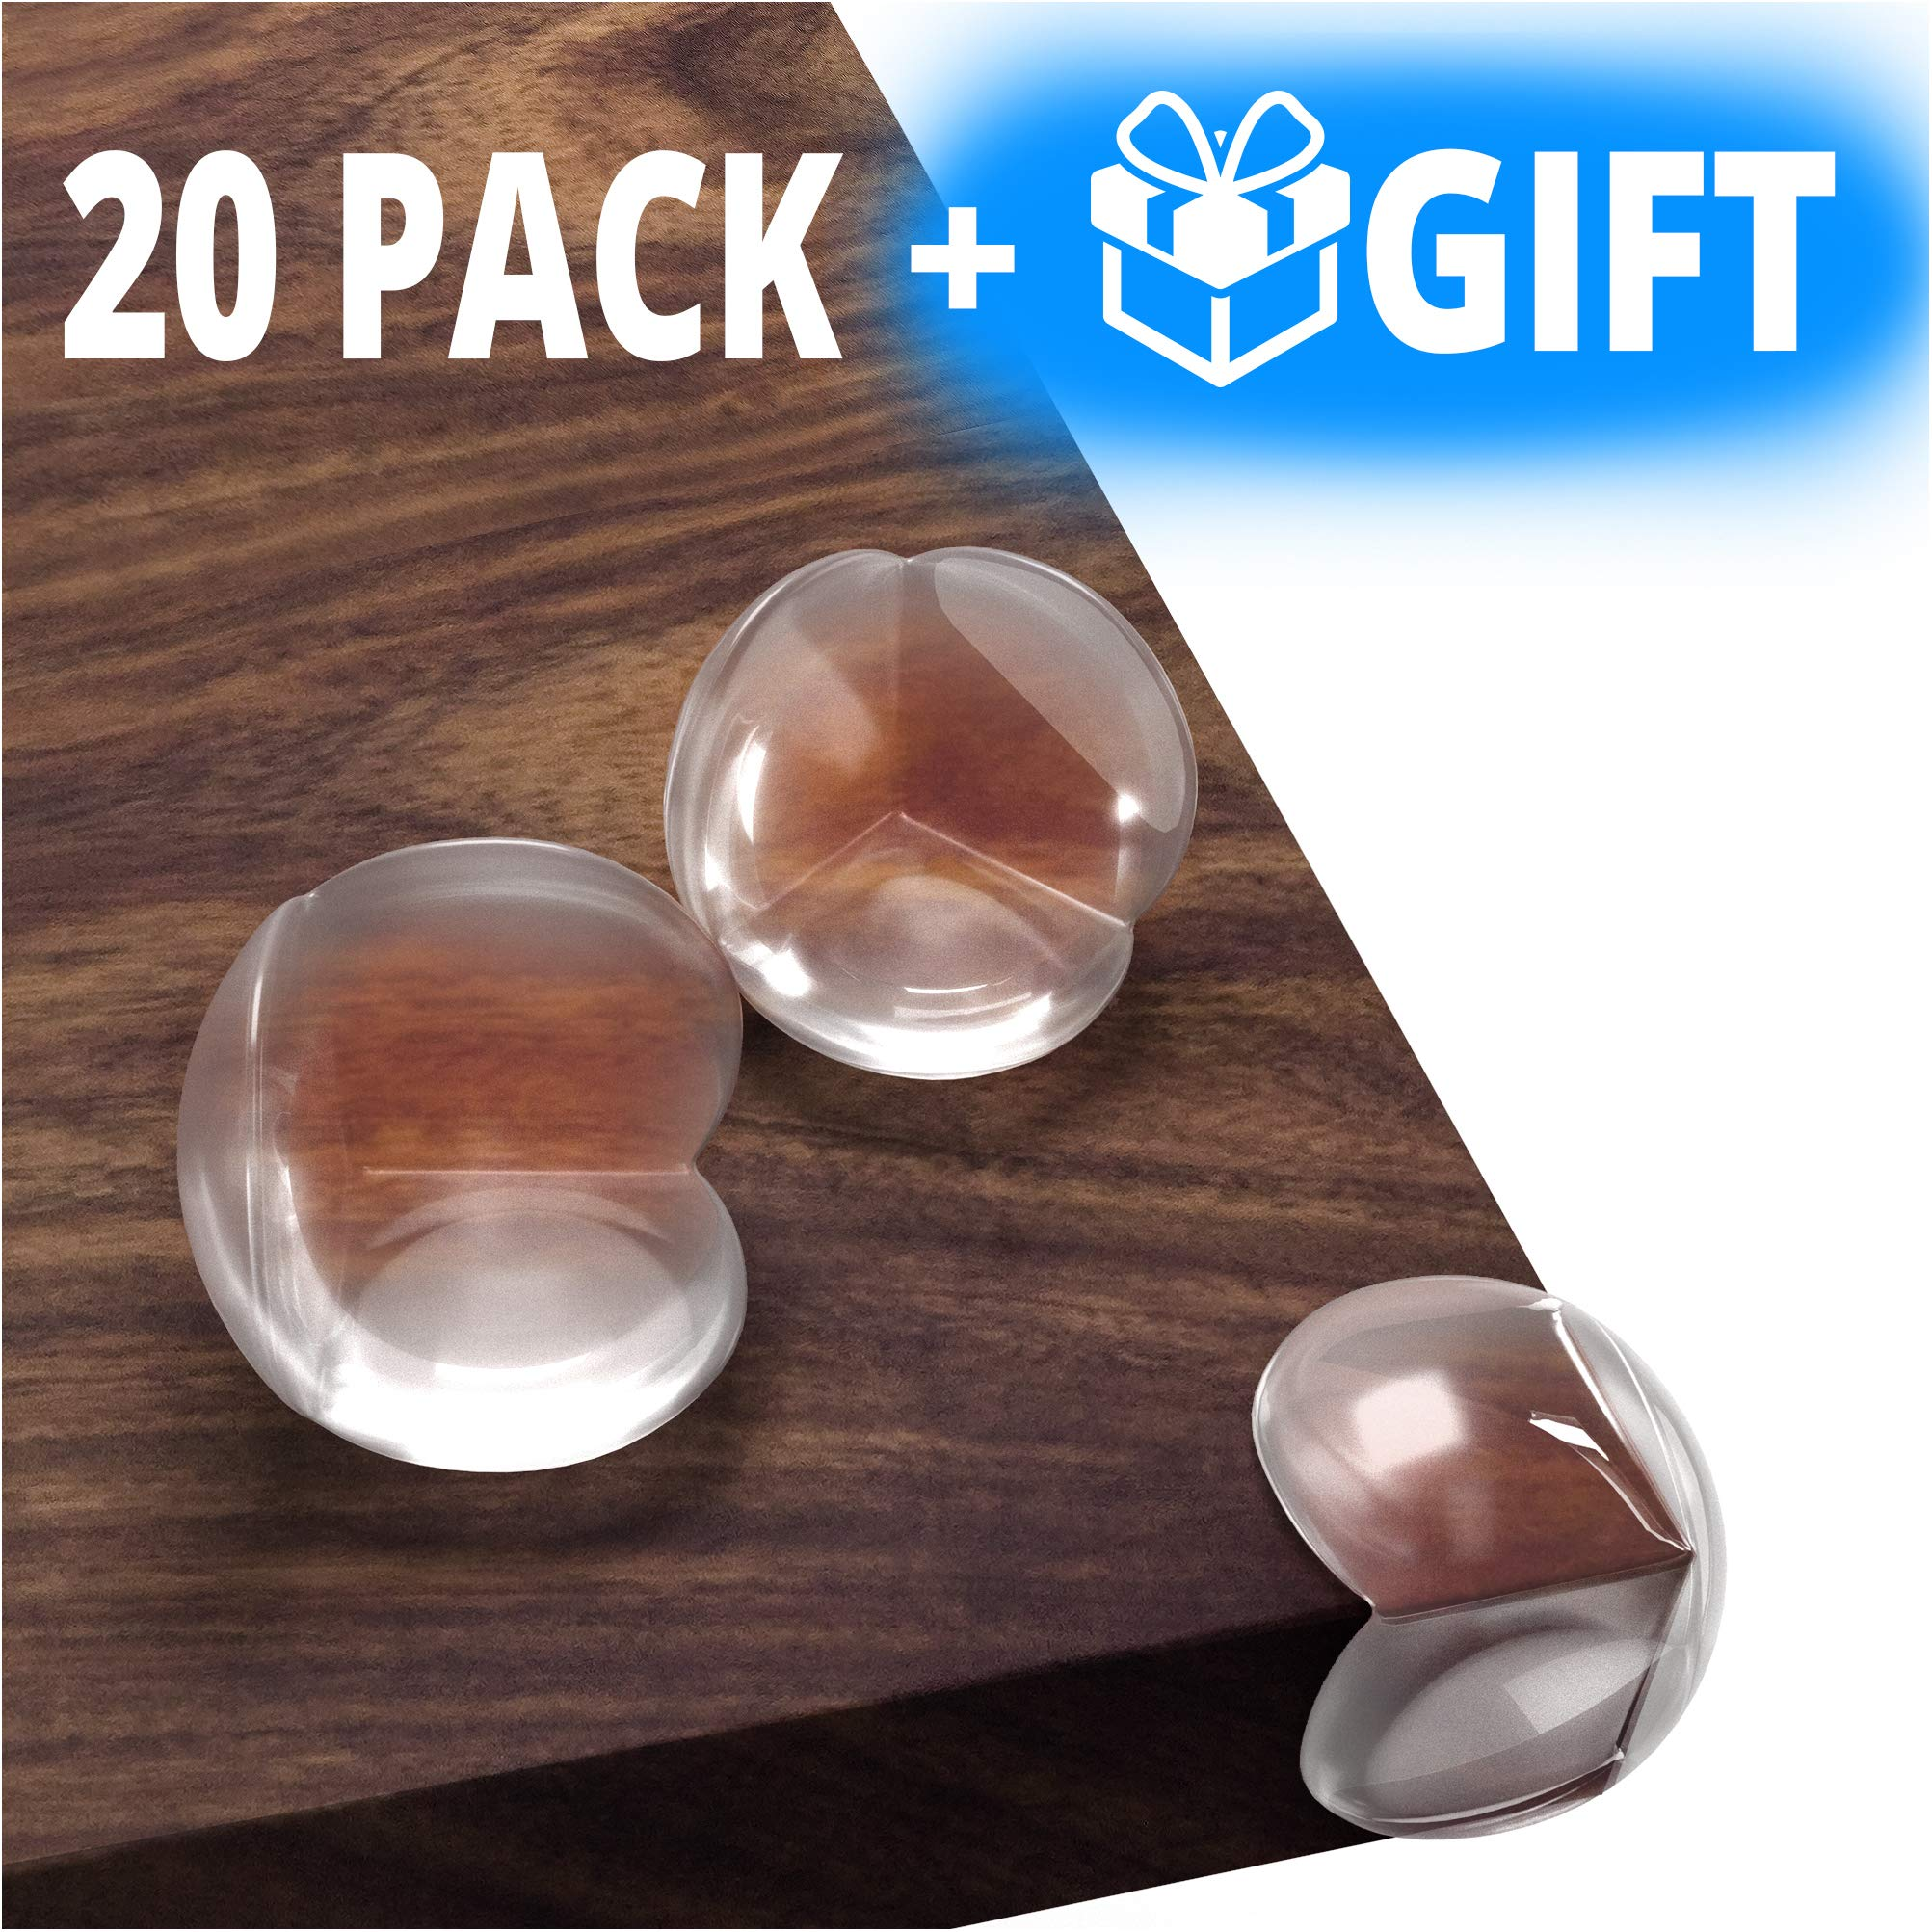 Kids Clear Corner Guards -20 Pack + Free Gift- Child Safety Sharp Corner Protector - Table Corner Protectors for Baby Proofing - Baby Safety Adhesive Edge Bumpers - Glass Furniture Child Proof Guards by Family Care